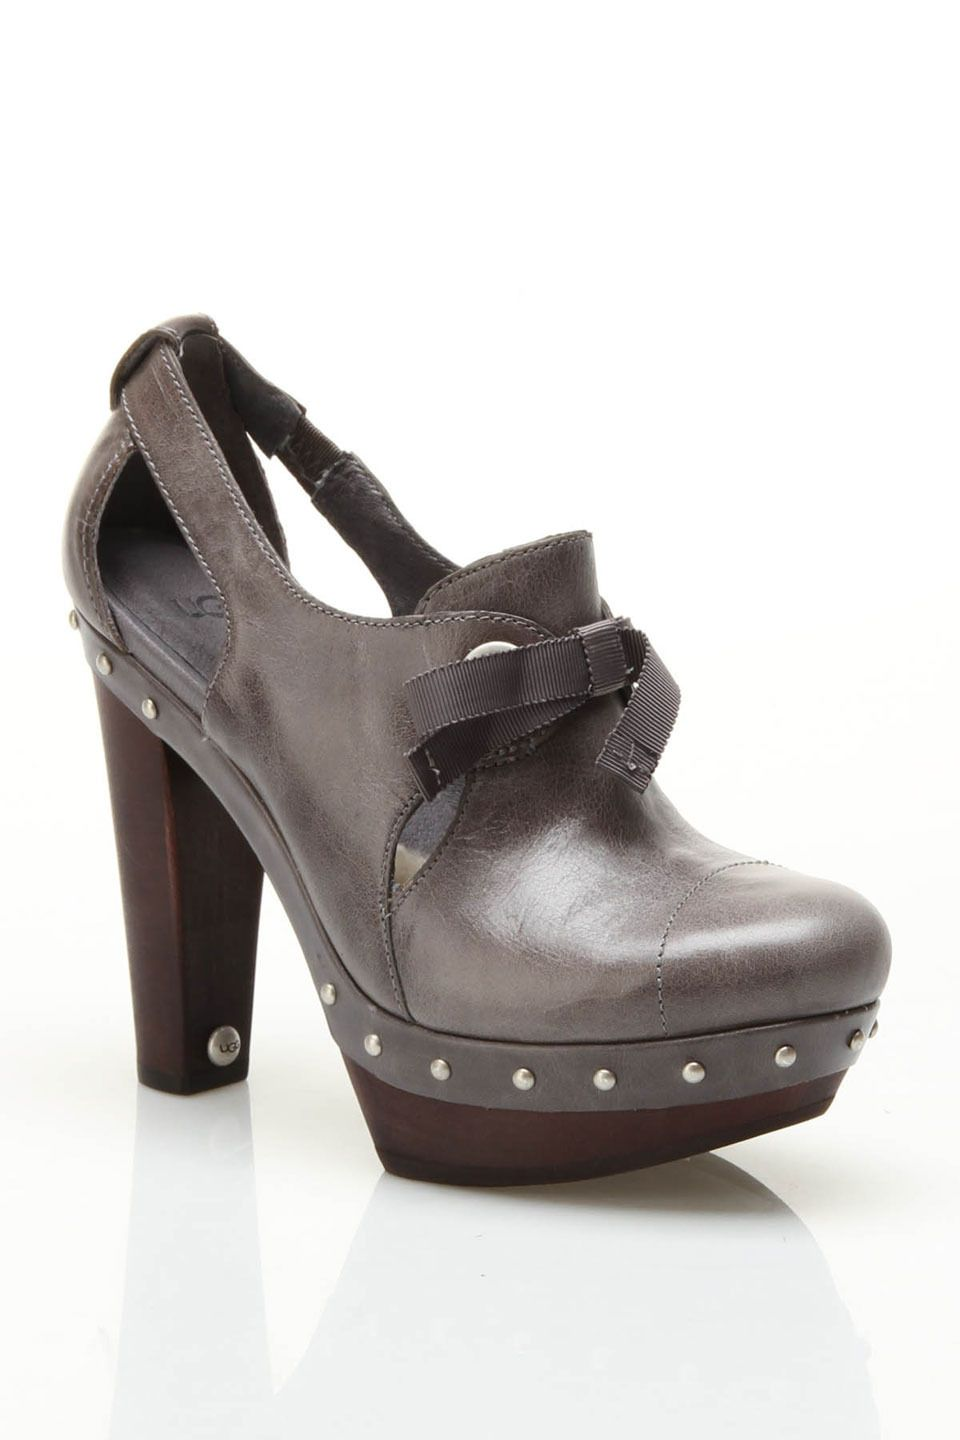 Ugg Ladies' Celestina Gray Pumps with Bows.